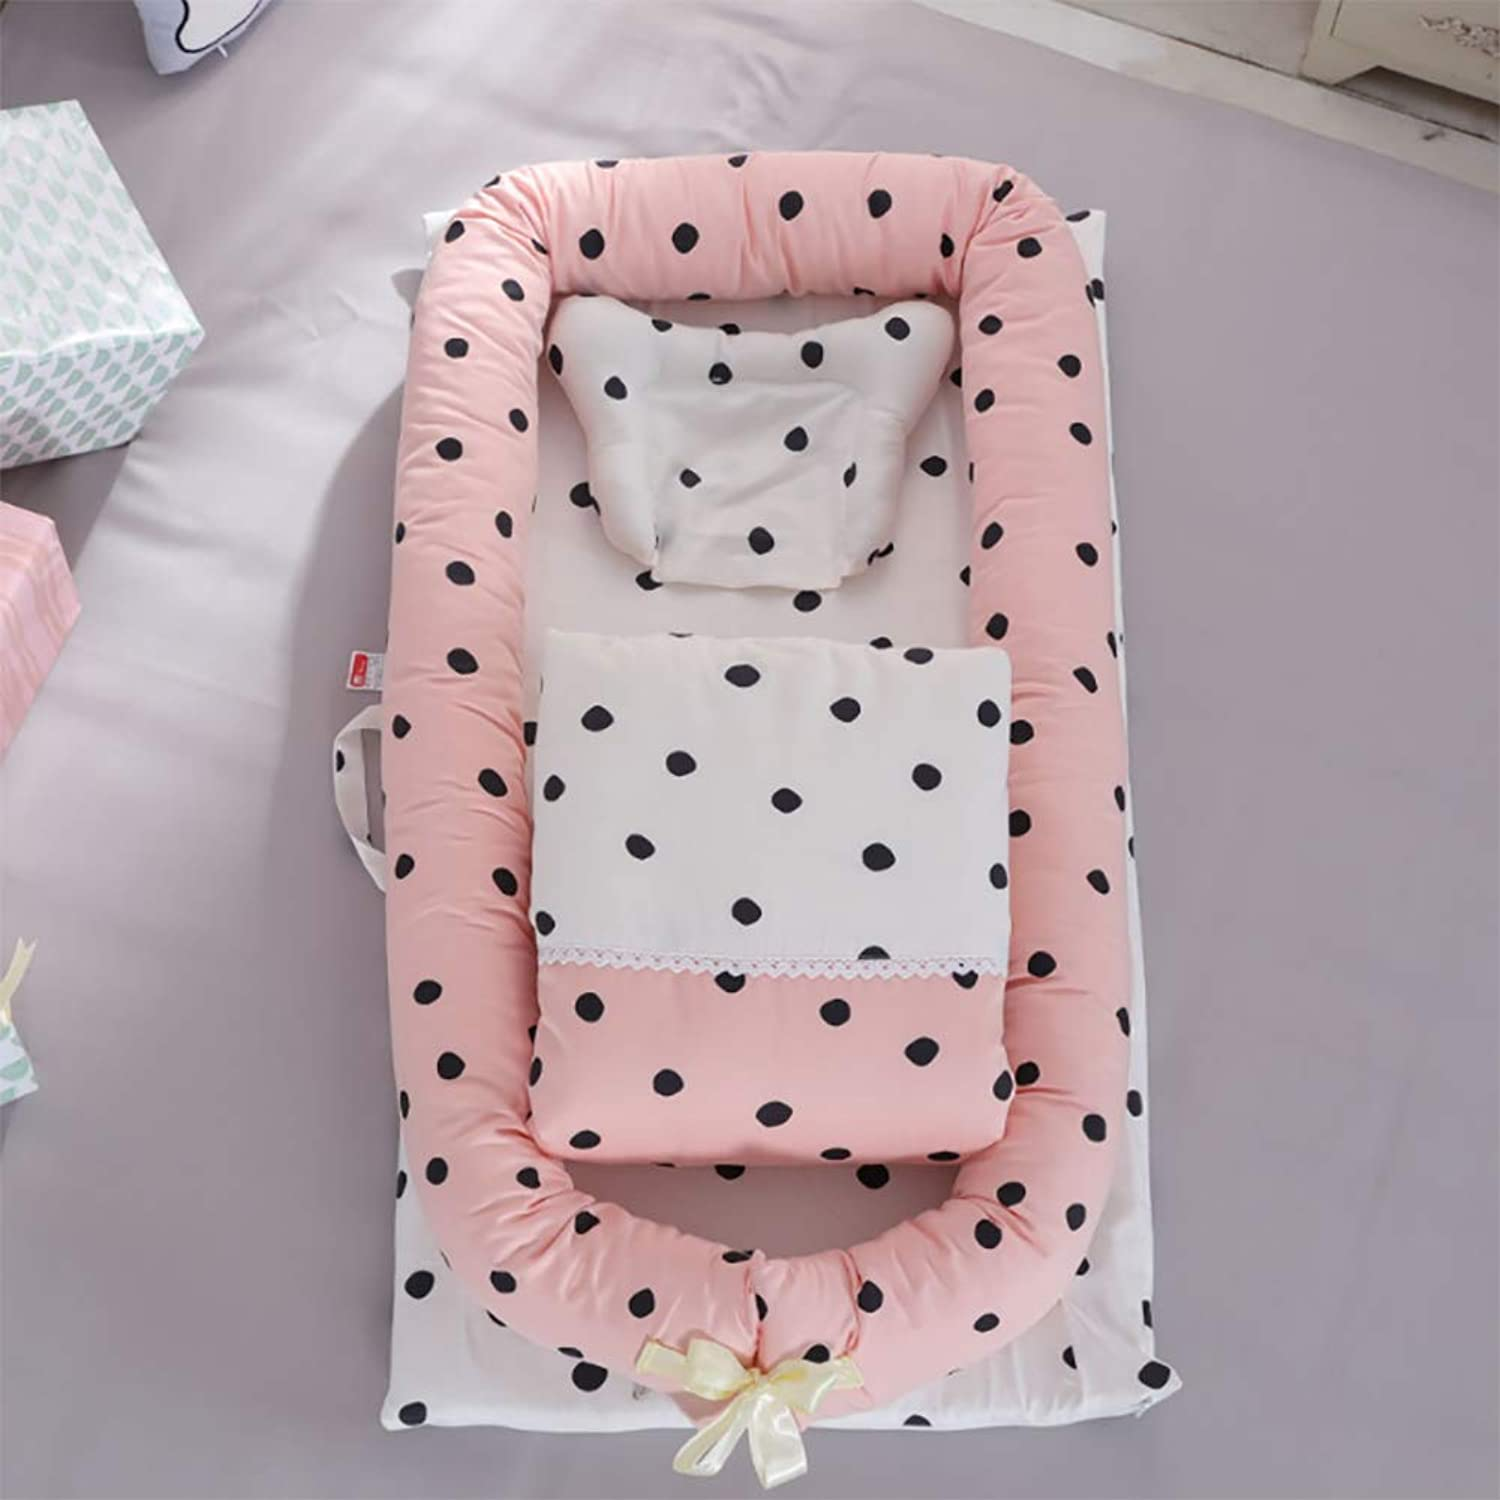 Crib Cotton Multi-Function Folding Portable Travel Baby Bionic Crib Suitable for Age 0-24 Months Baby (Removable Quilt),H